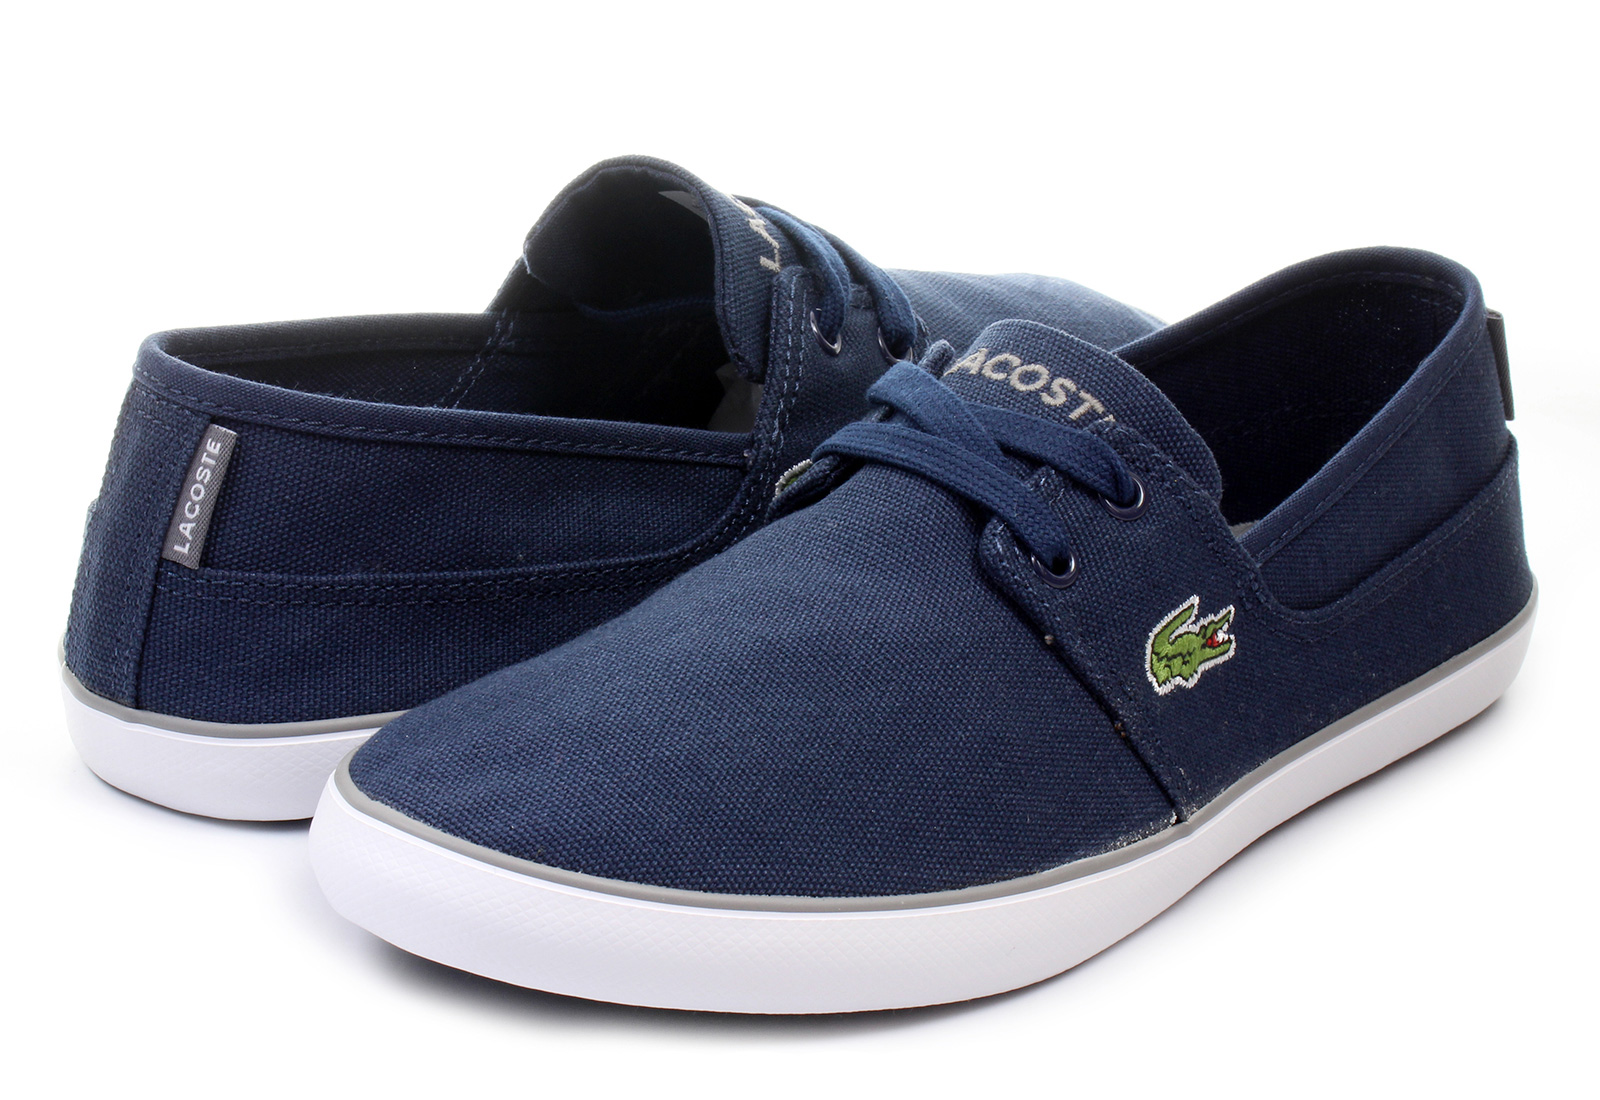 Lacoste Cipő - Marice Lace - 152spm2021-09a - Office Shoes ... 9d221bba36